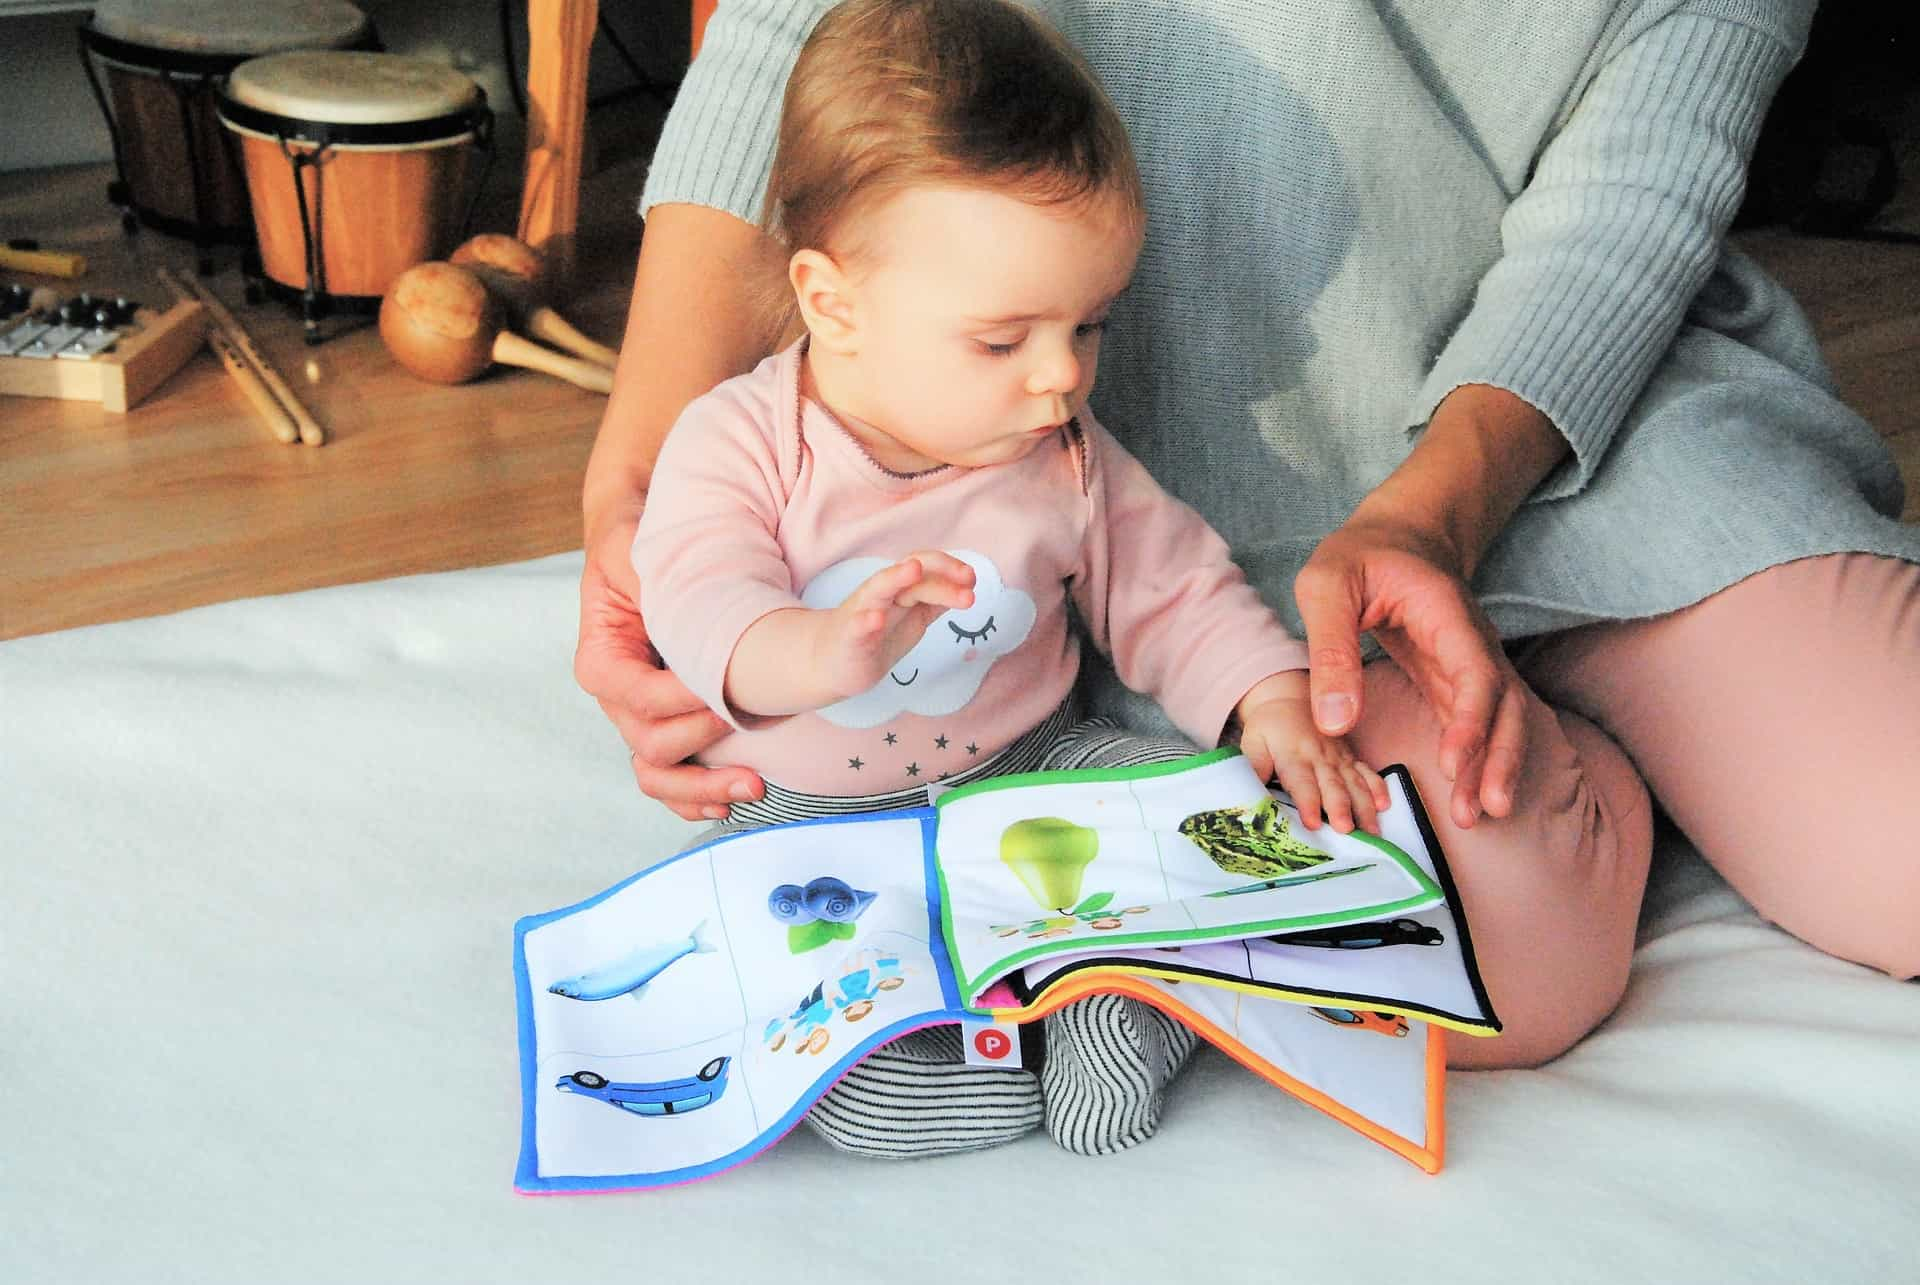 Stay at home mum with baby looking through a book